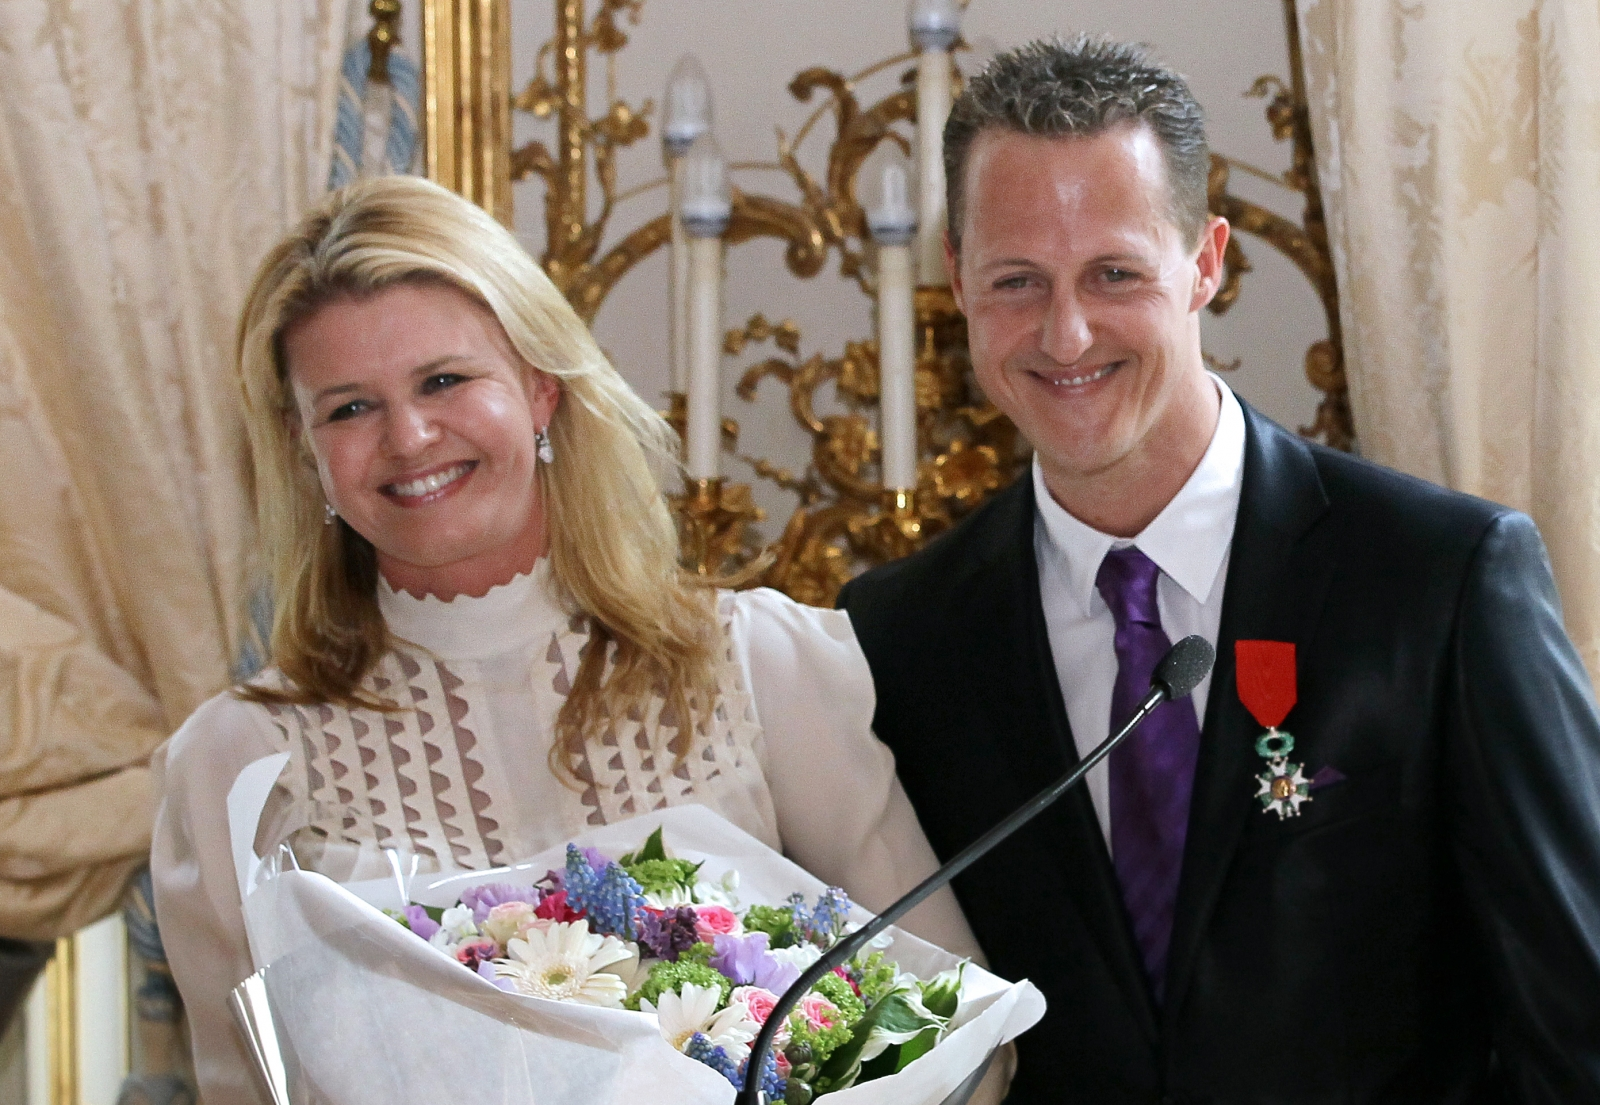 Details revealed about the care Michael Schumacher is receiving at home from wife Corinna and a dedicated team